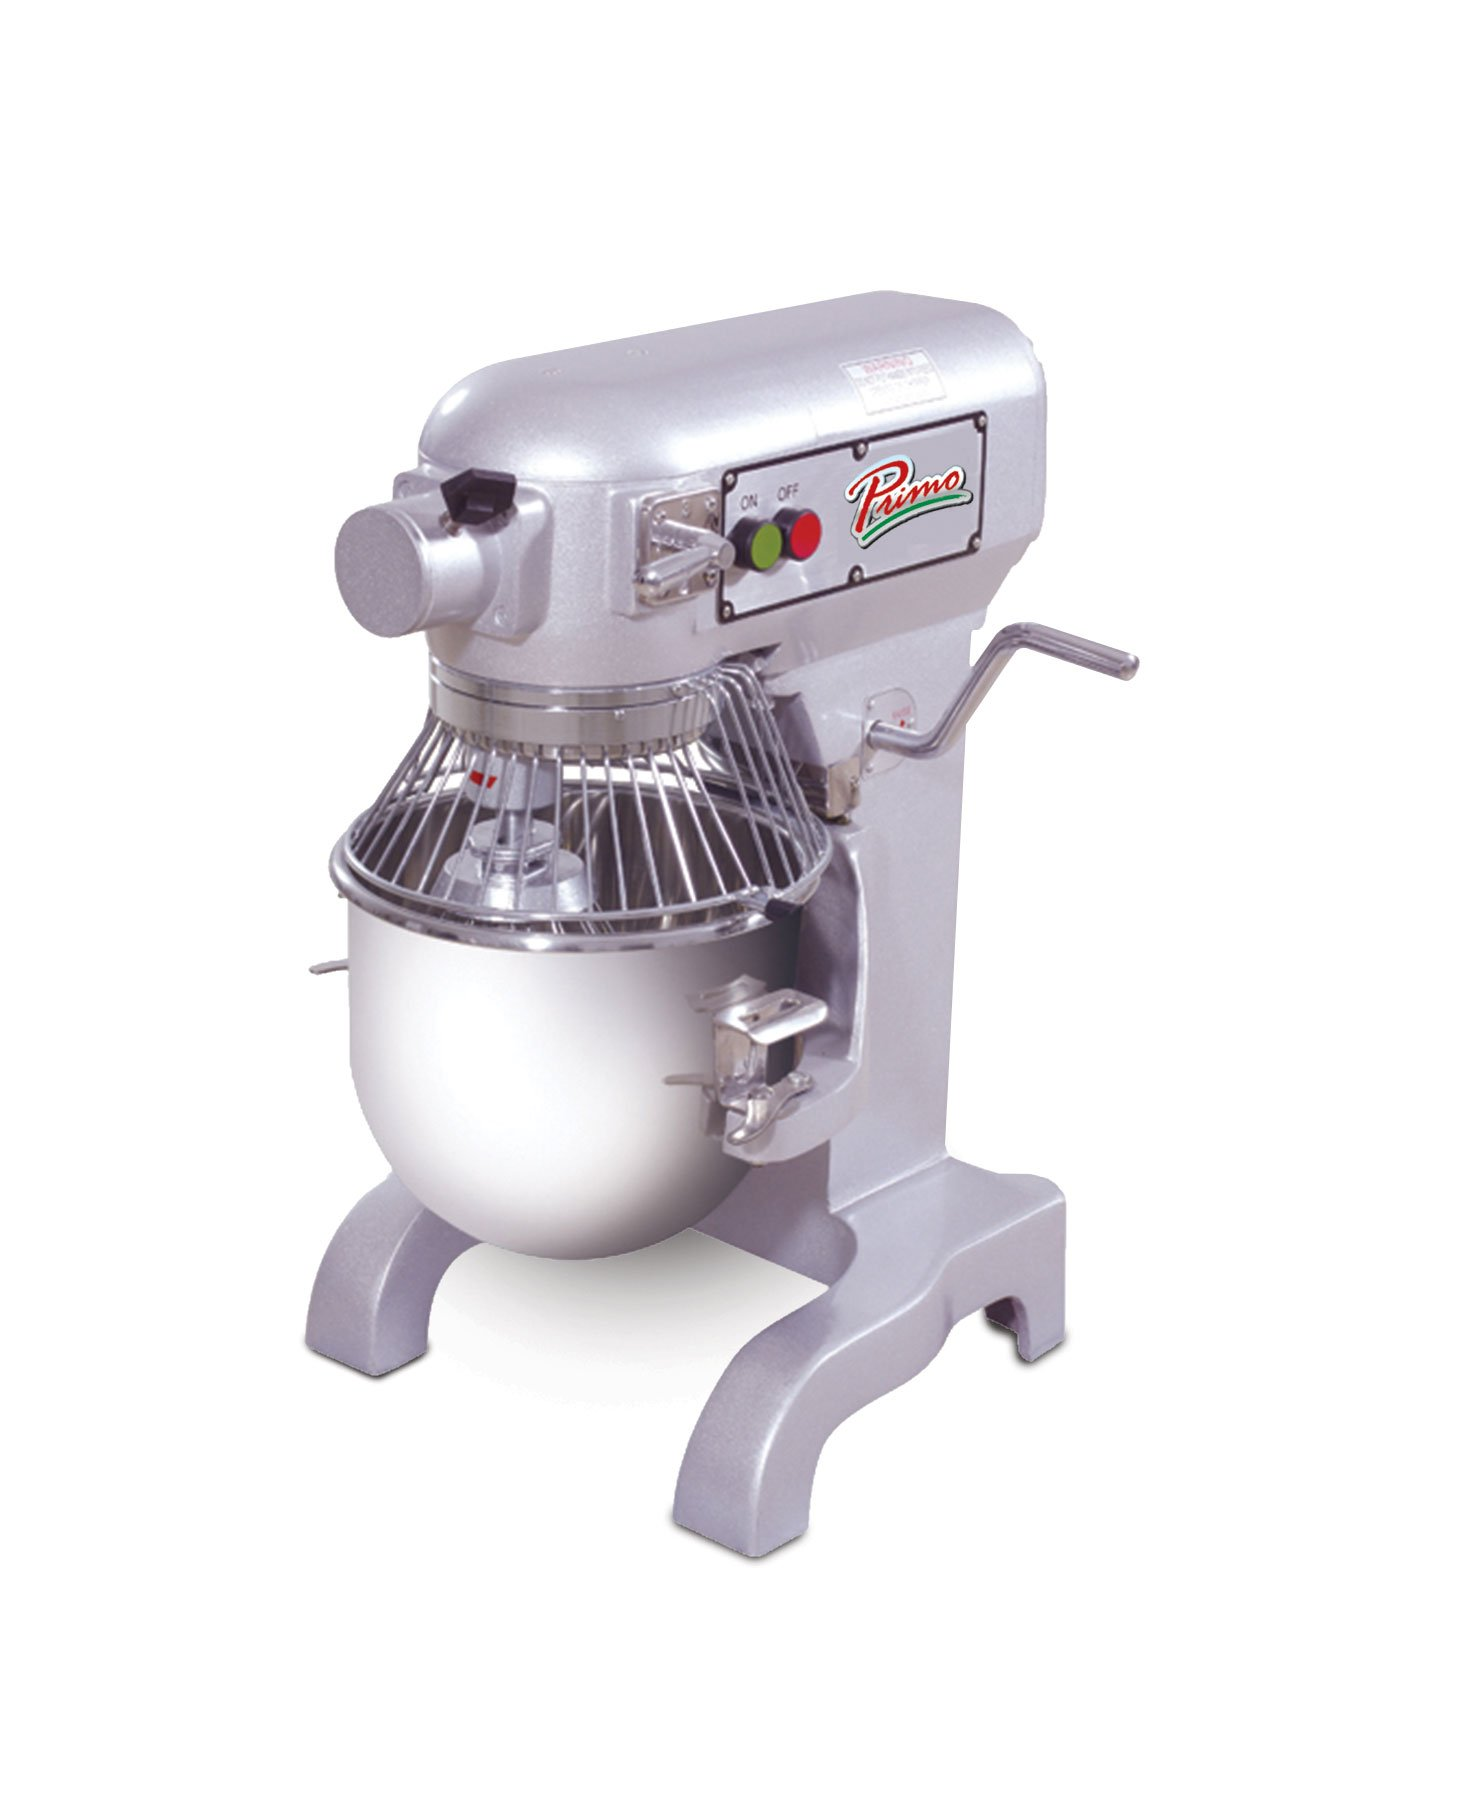 PRIMO PM-10 Stainless Steel Mixer, 10 quart Capacity, 13'' Width x 30'' Height x 15'' Depth by Primo